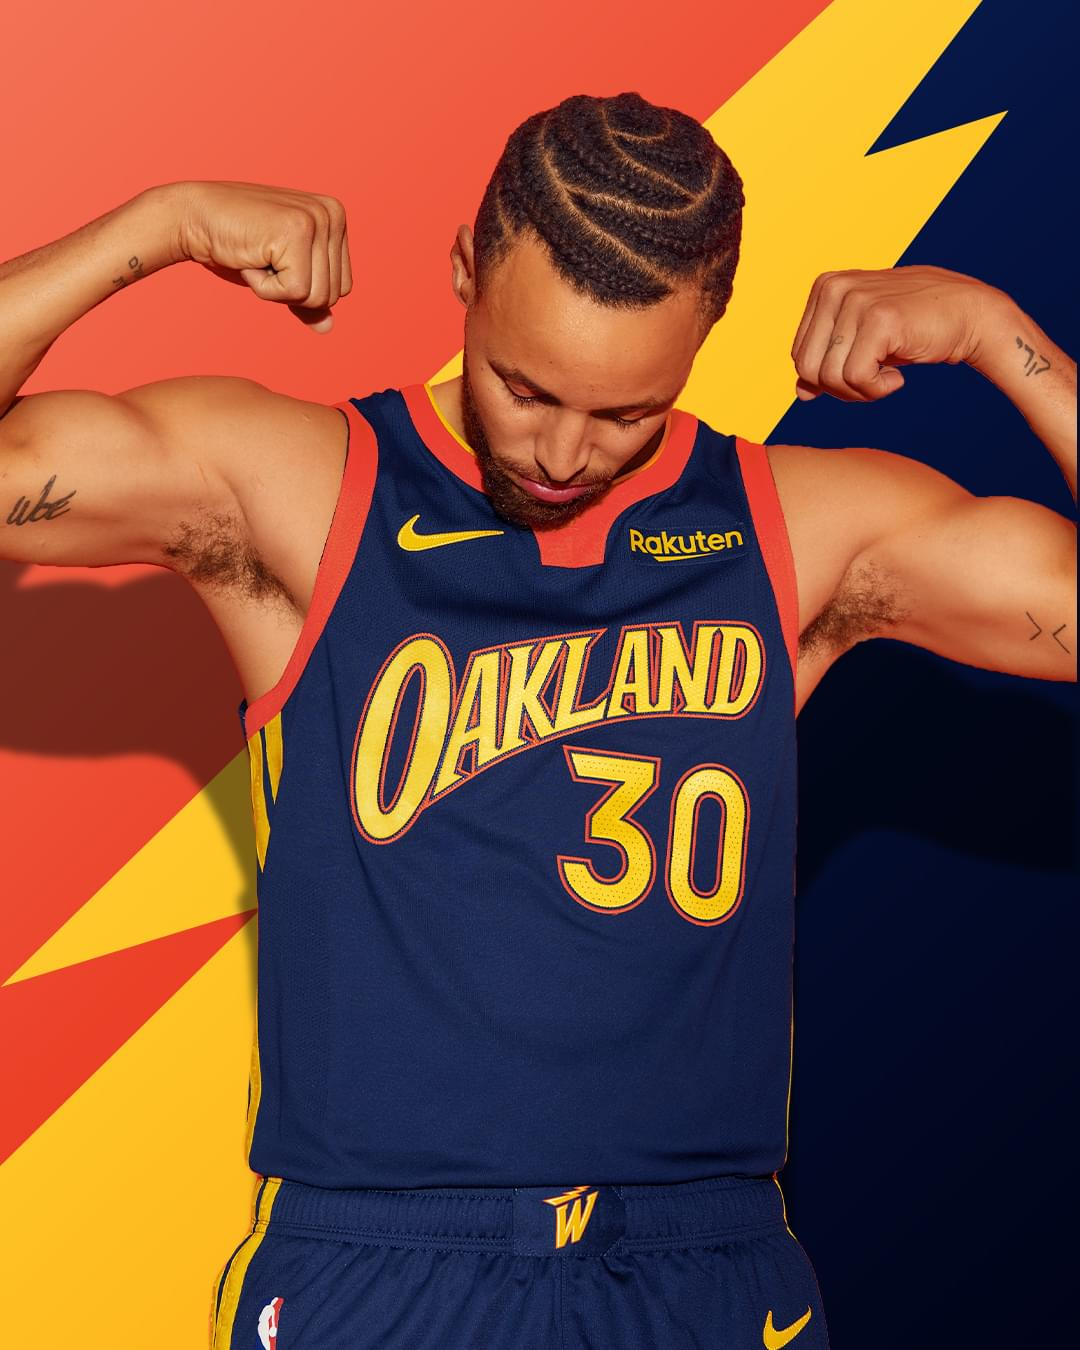 Warriors unveil new 'City Edition' jerseys as tribute to Oakland | KNBR-AF